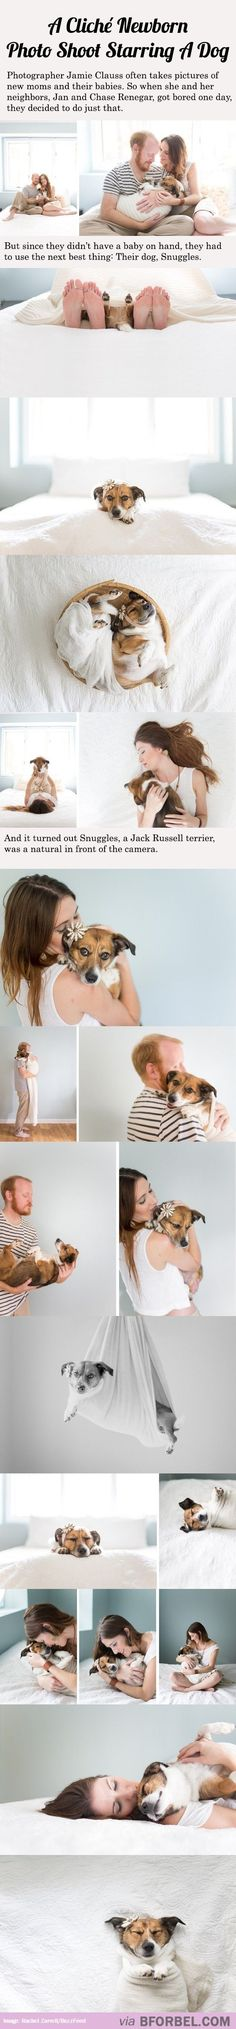 This Pin was discovered by Brandy Marvel. Discover (and save!) your own Pins on Pinterest. | See more about dogs, photo shoots and funny..